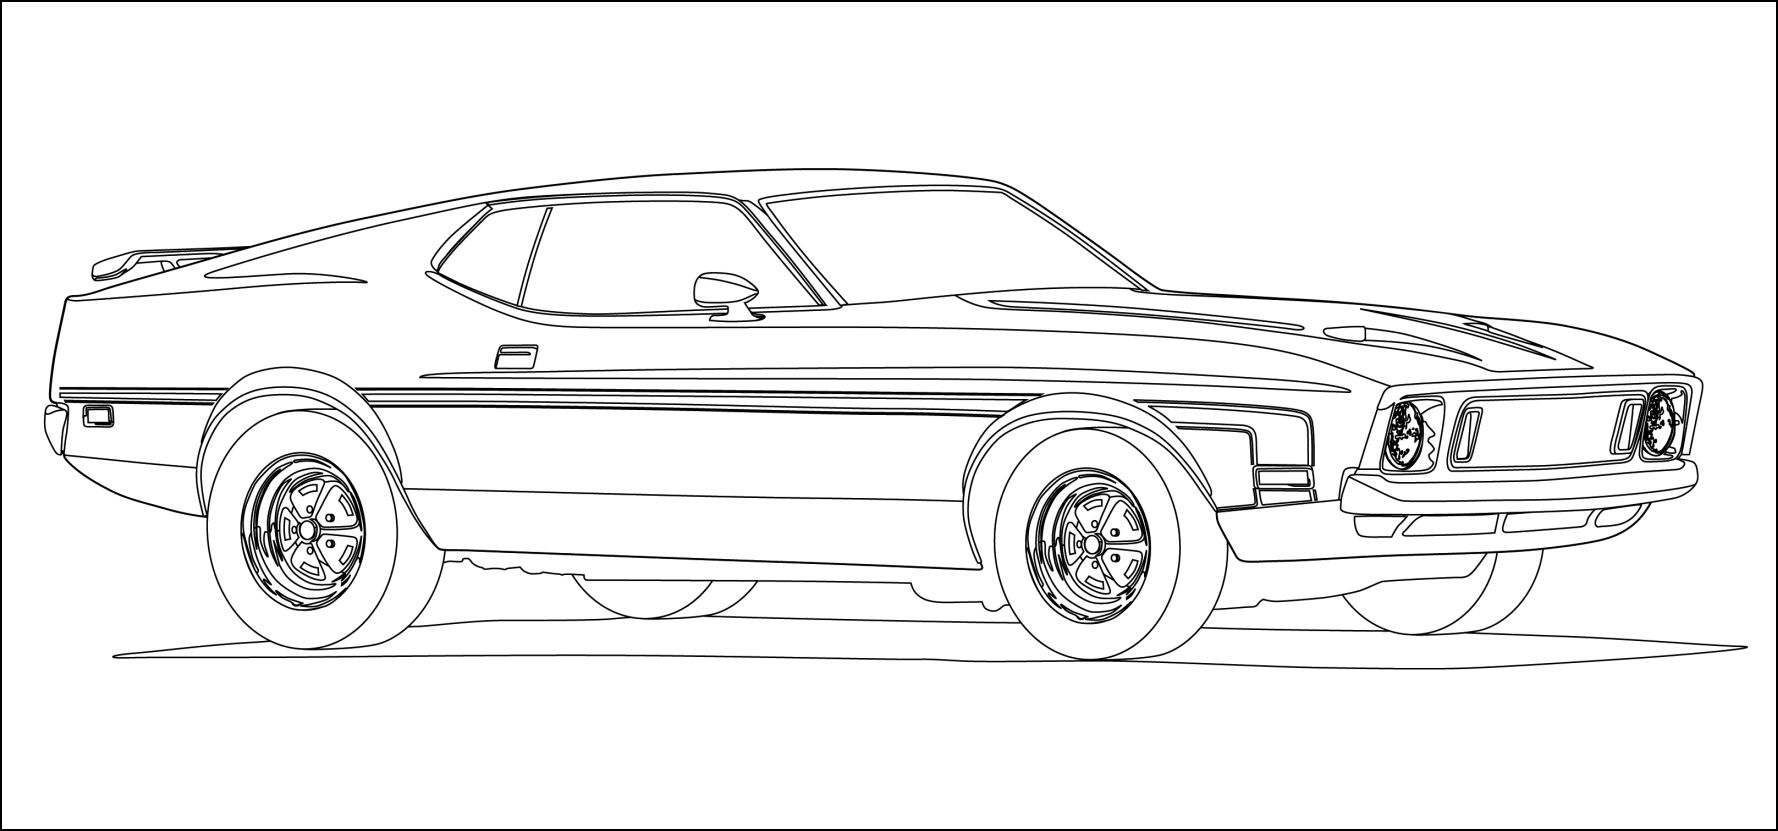 Racecar Coloring Pages - Mustang